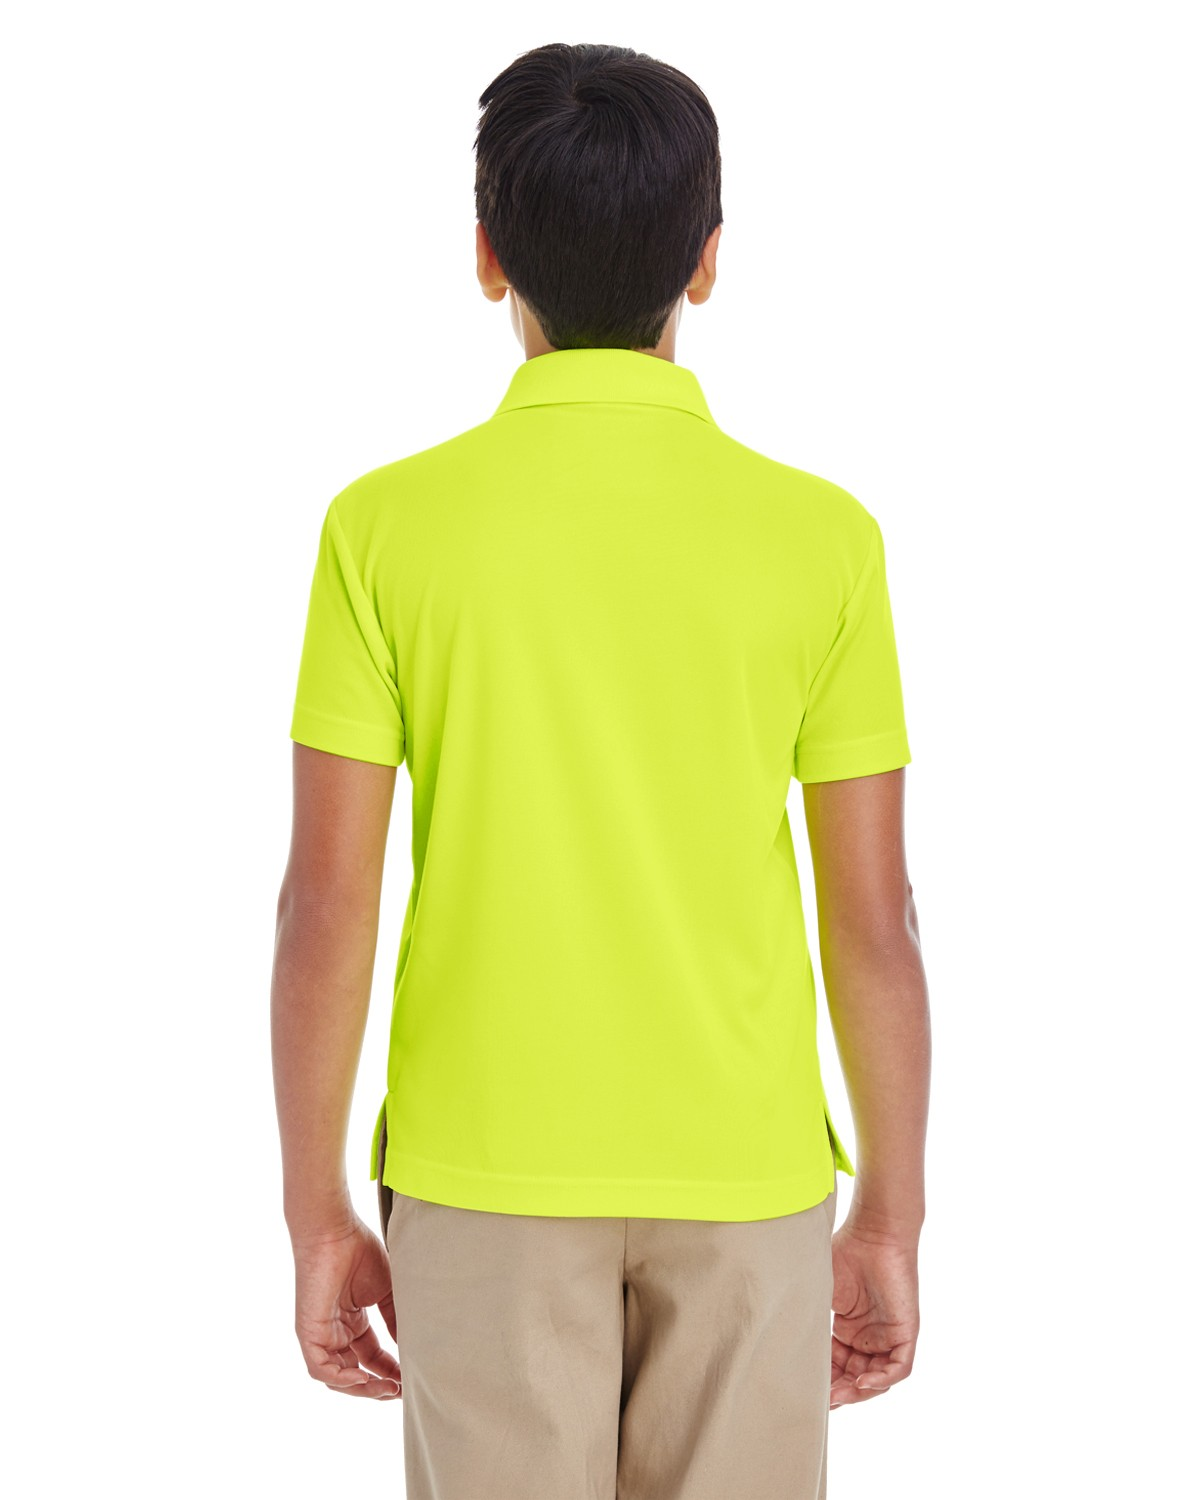 88181Y Core 365 SAFTY YELLOW 691